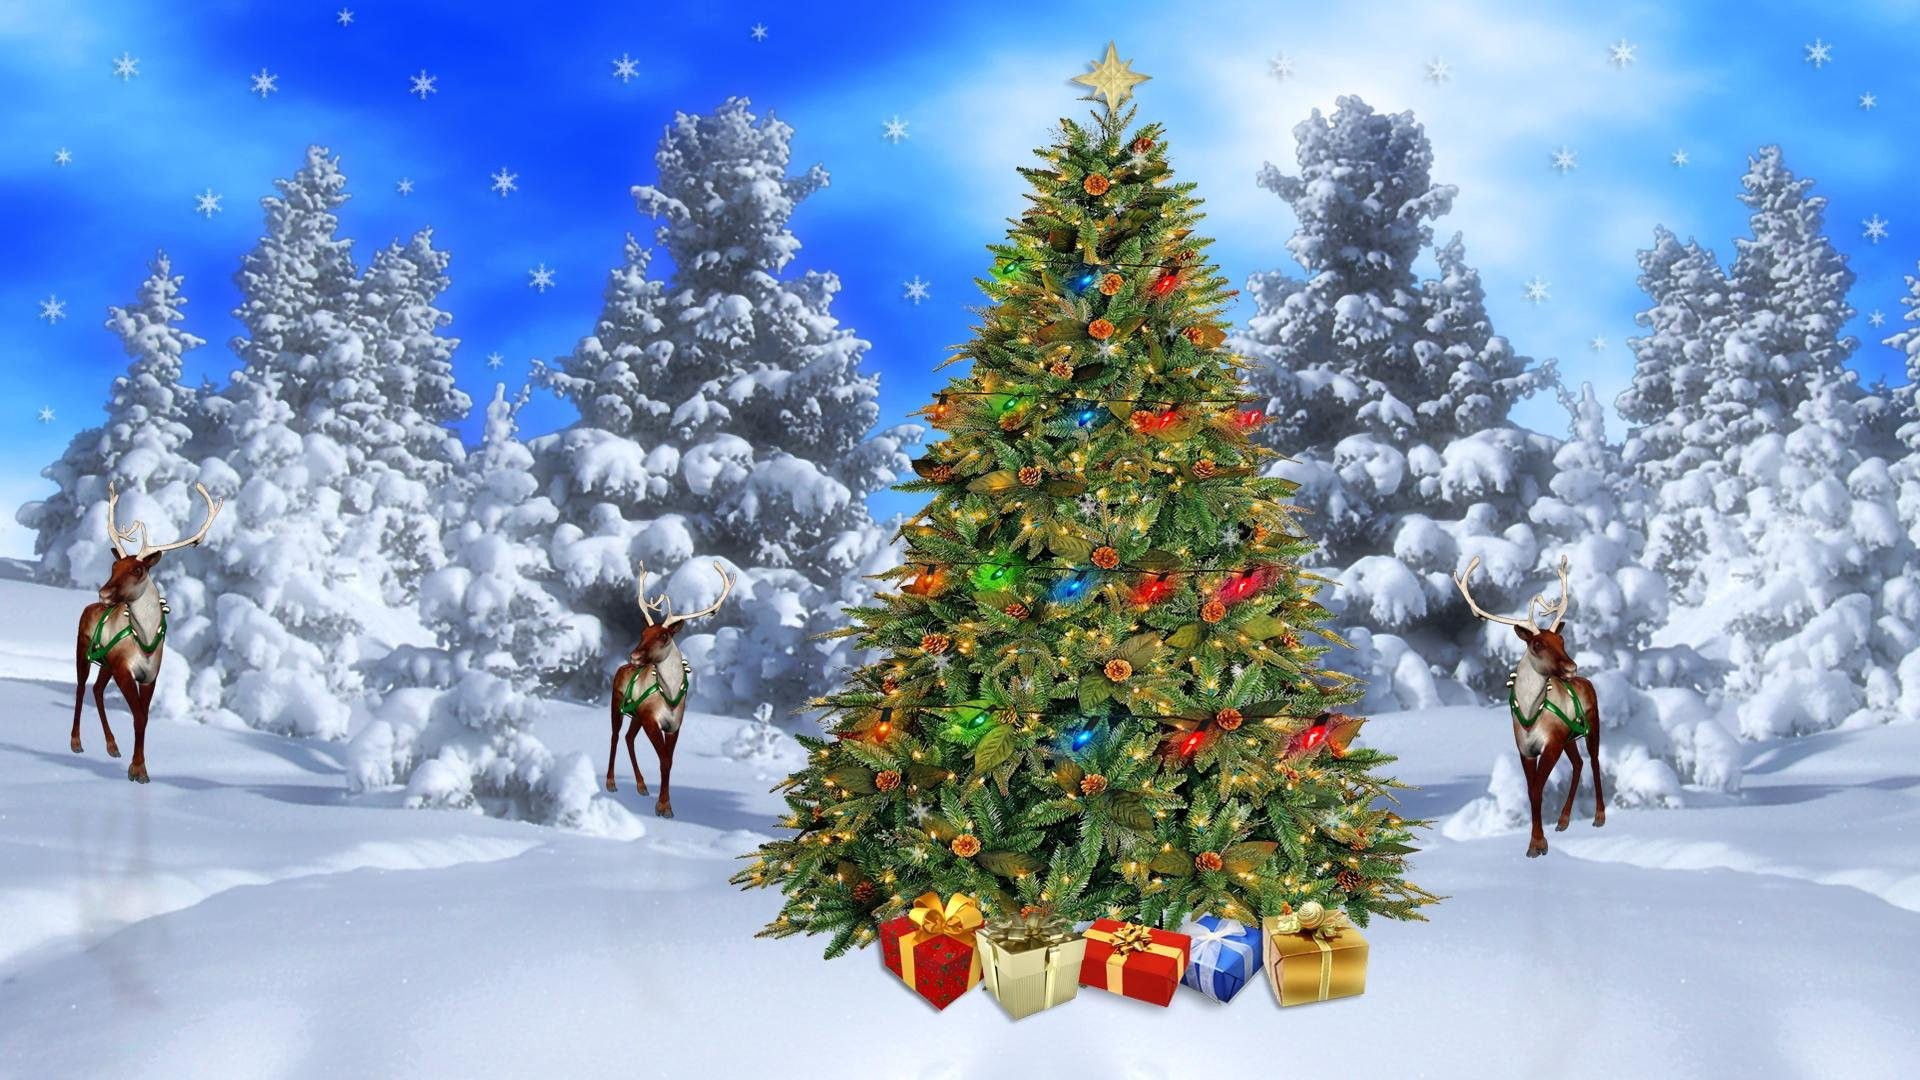 Find this Pin and more on Best Games Wallpapers. Christmas scene …